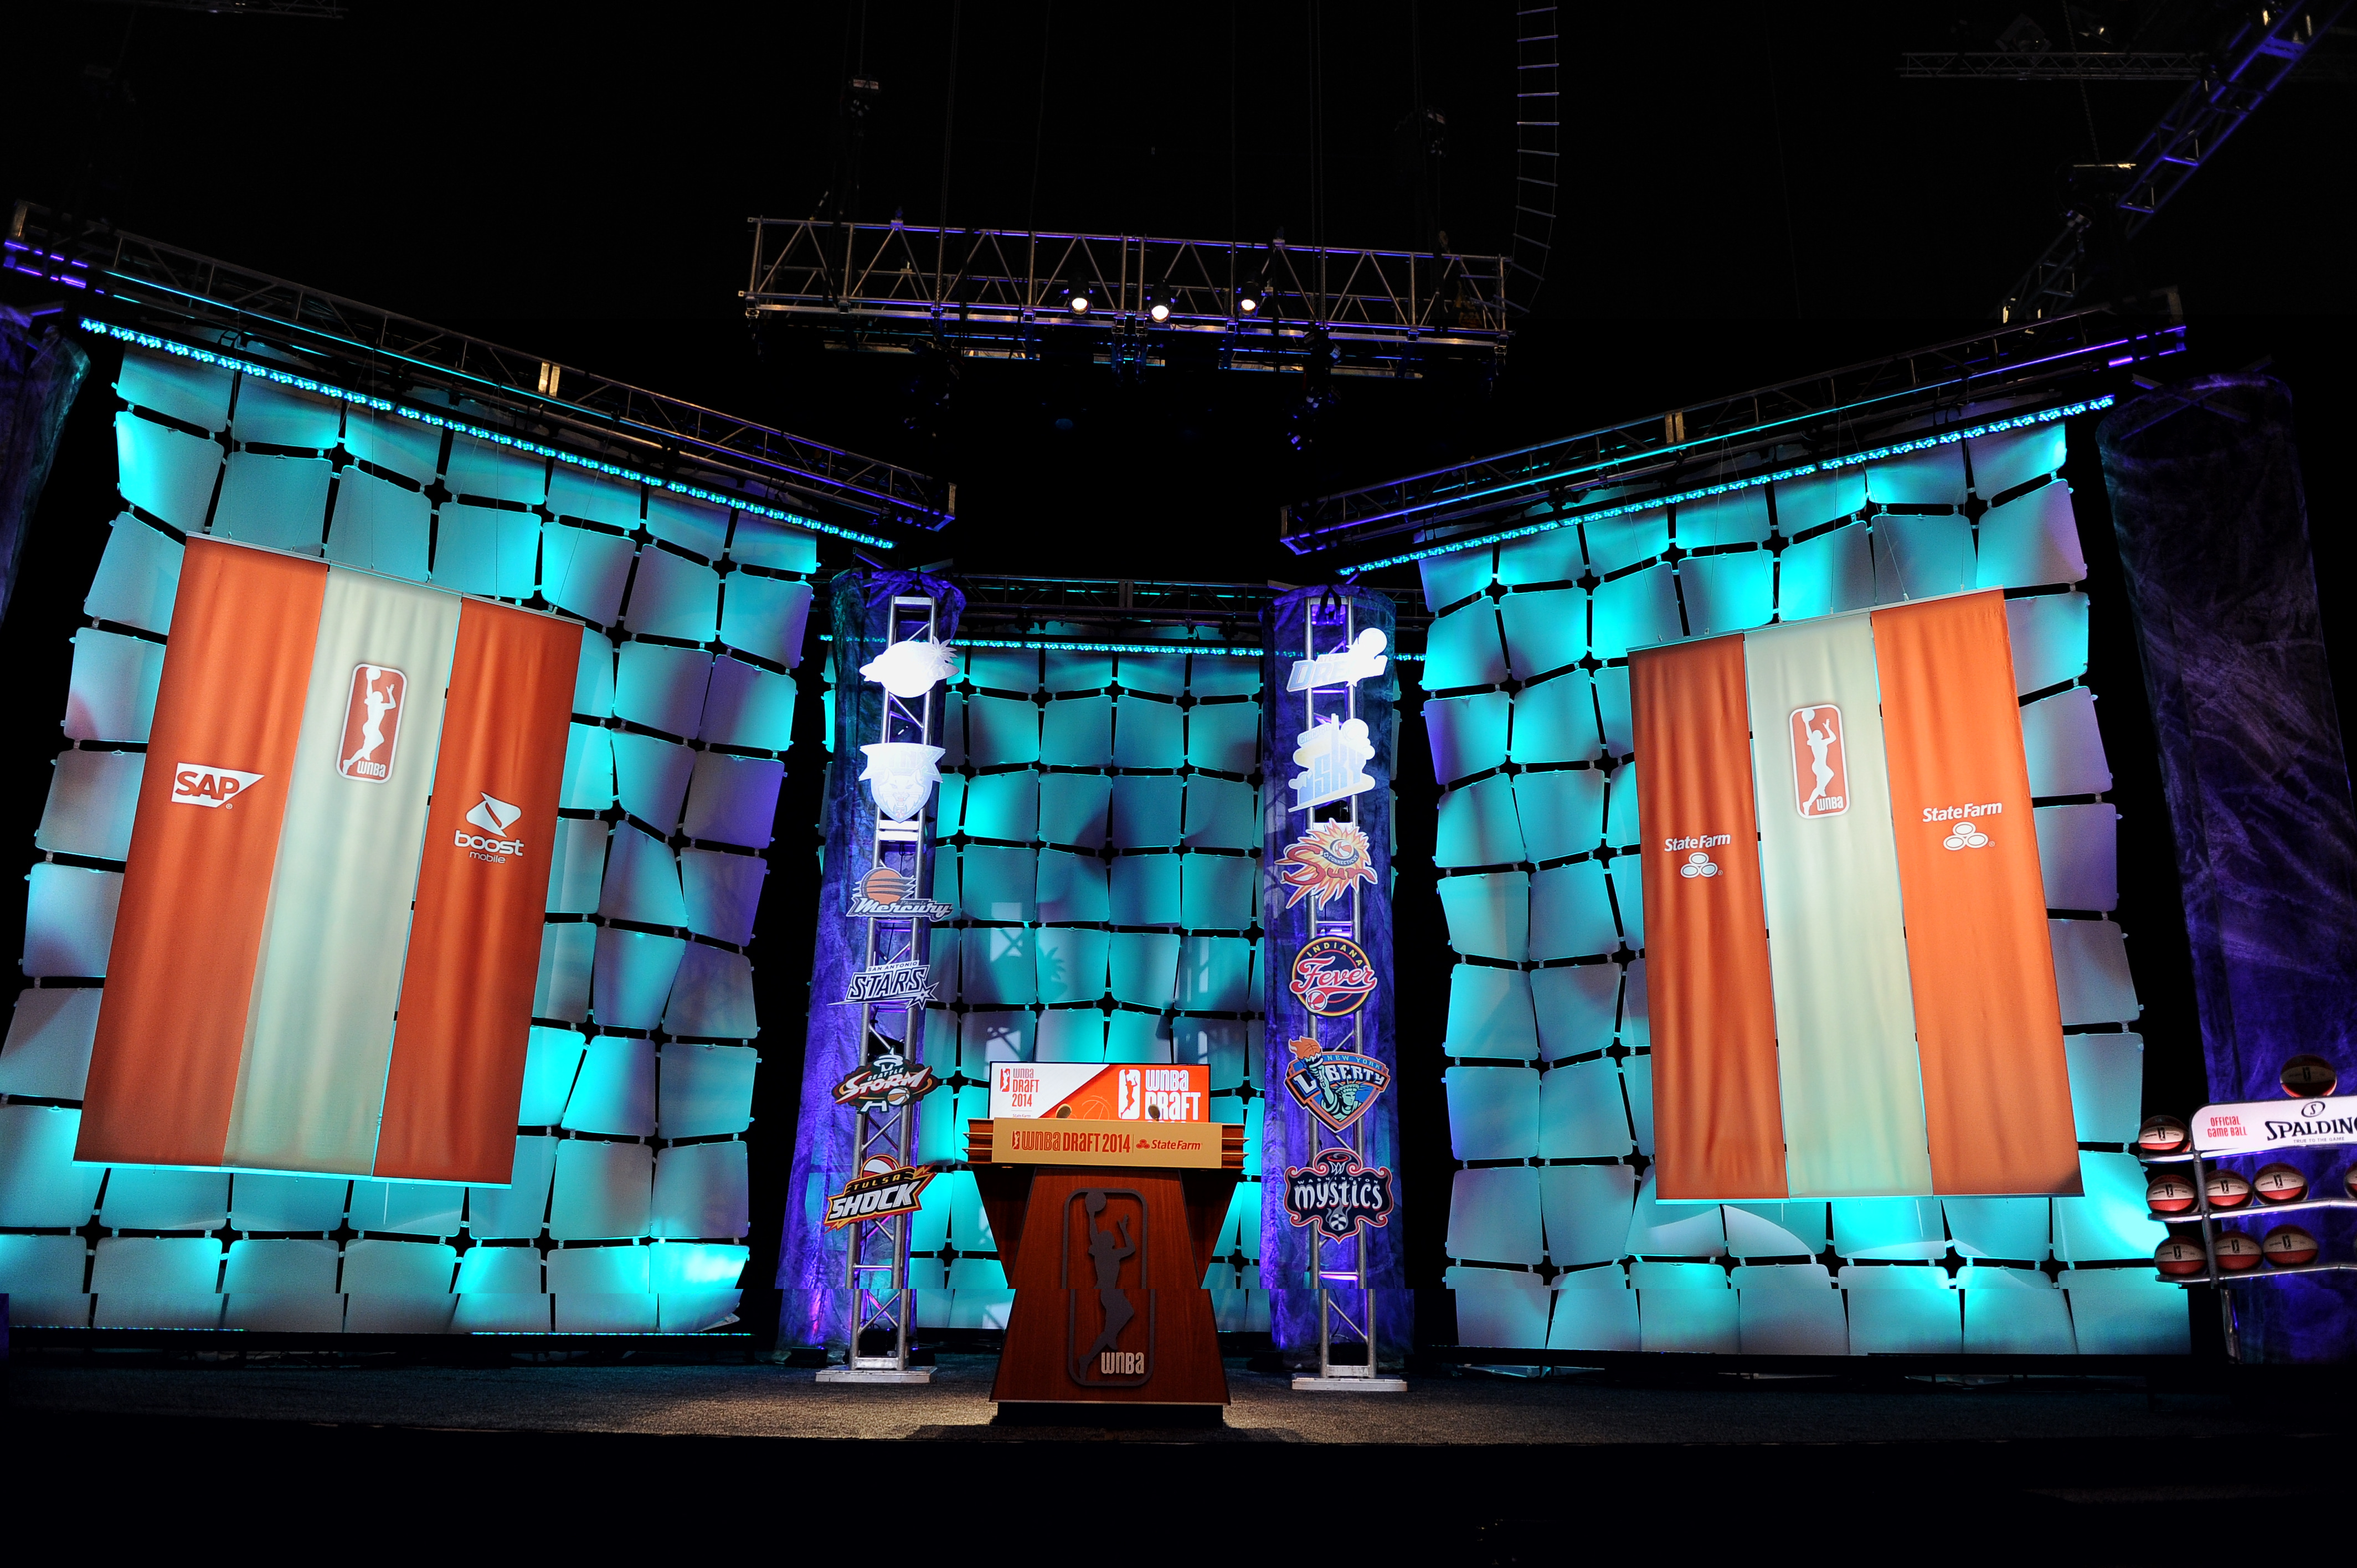 A general view of the stage prior to the 2014 WNBA Draft Presented By State Farm on April 14, 2014 at Mohegan Sun Arena in Uncasville, Connecticut.